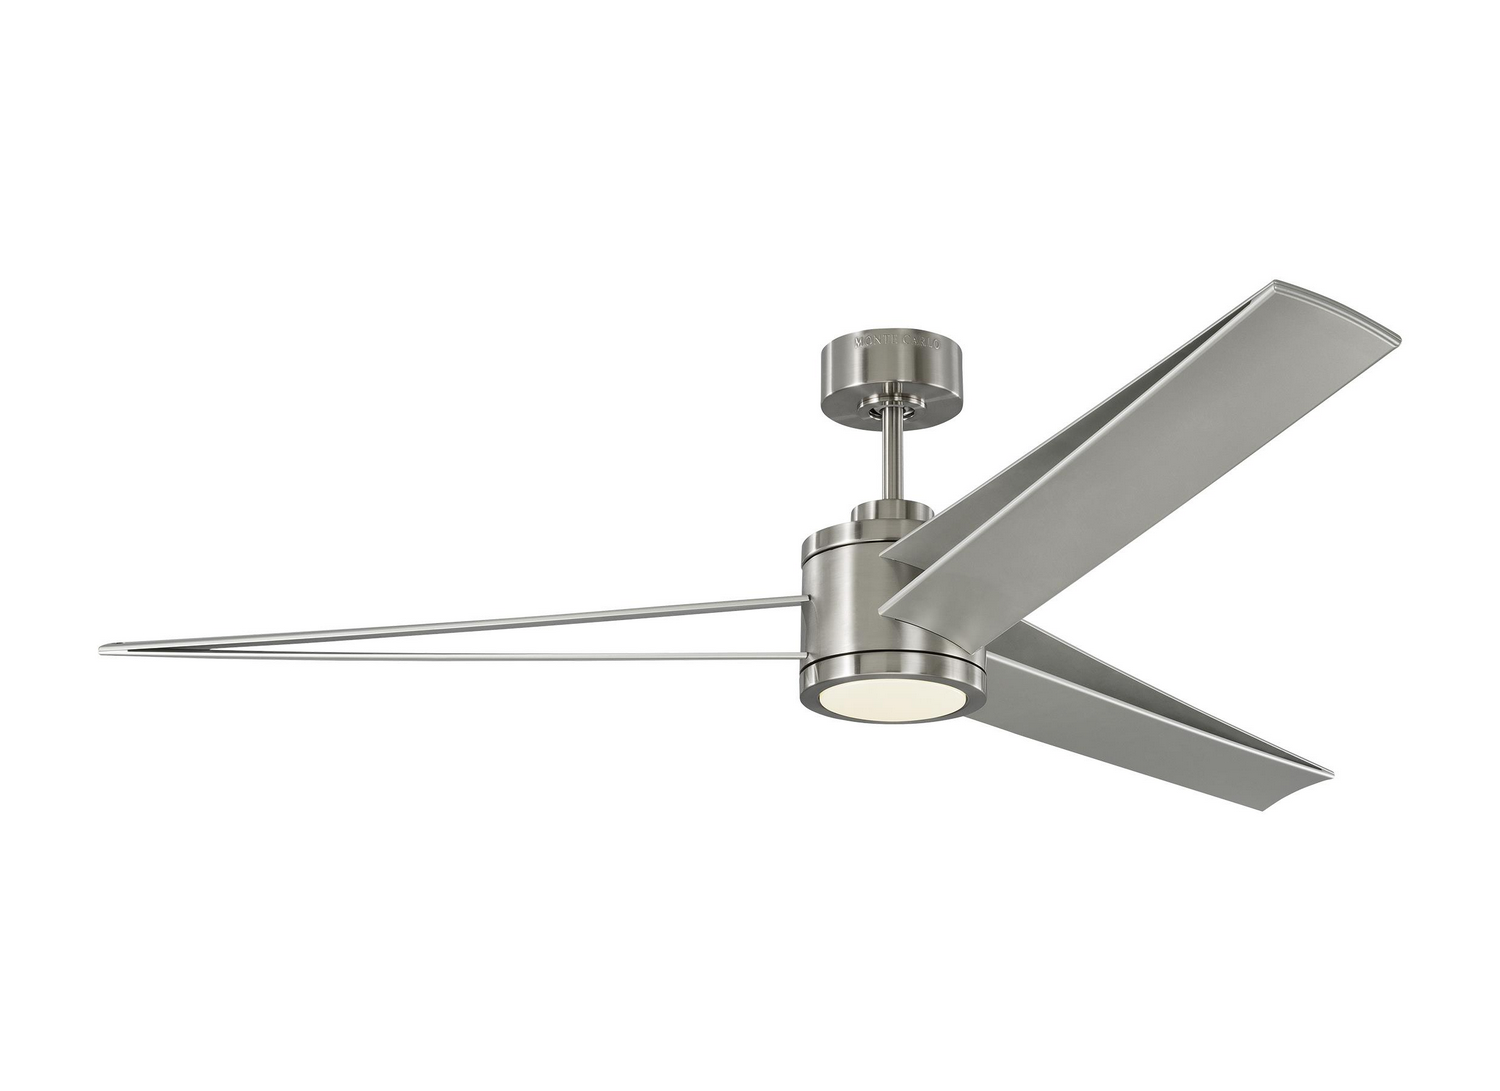 60 inchCeiling Fan from the Armstrong collection by Monte Carlo 3AMR60BSD